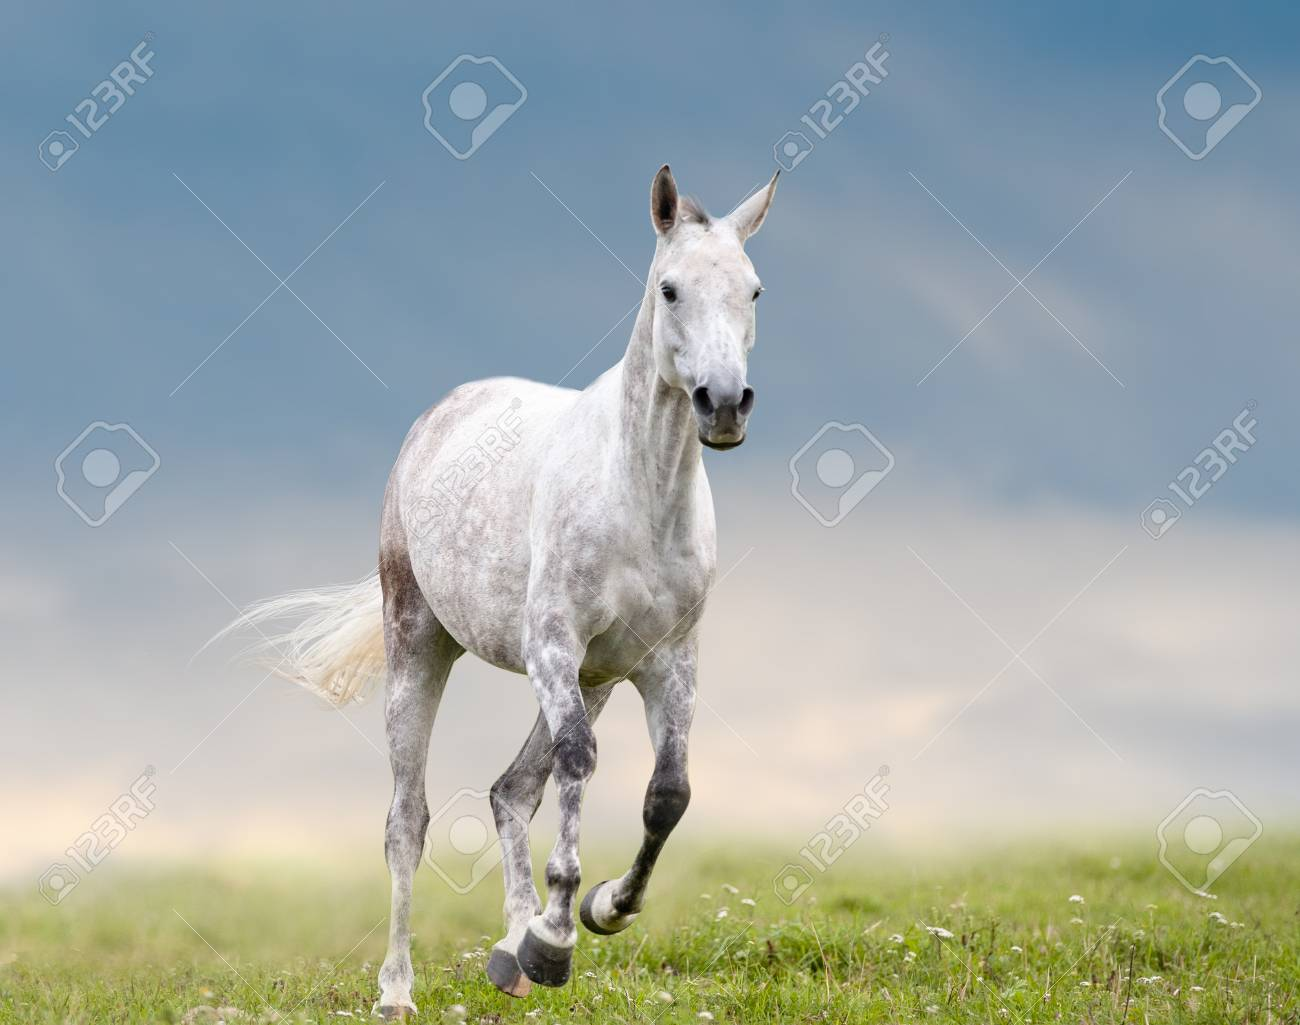 gray dapple horse runs in field with cloudy sky on a background